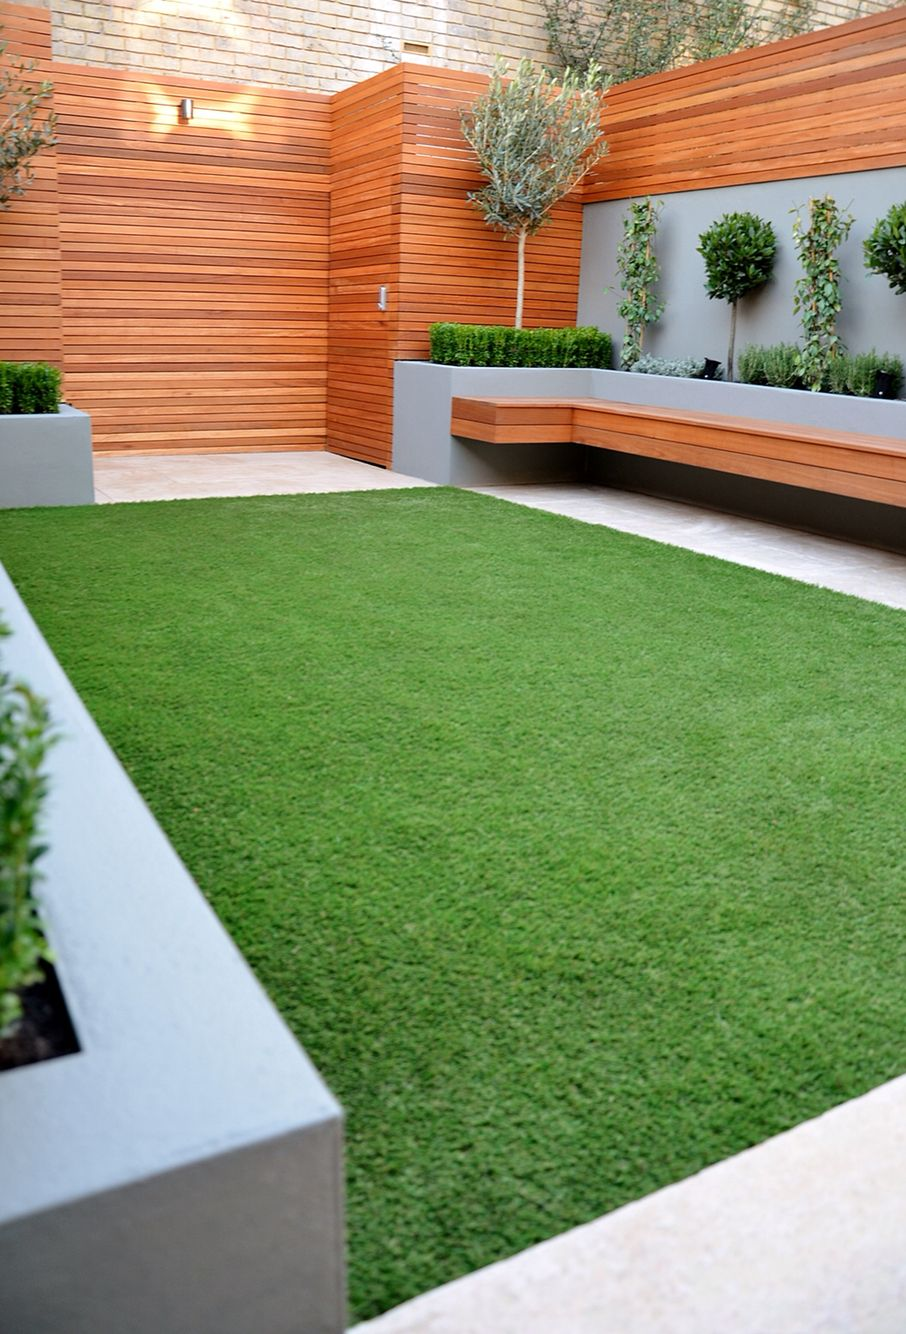 Small garden with decking seating | Urban garden design ... on Modern Landscaping Ideas For Small Backyards  id=56509